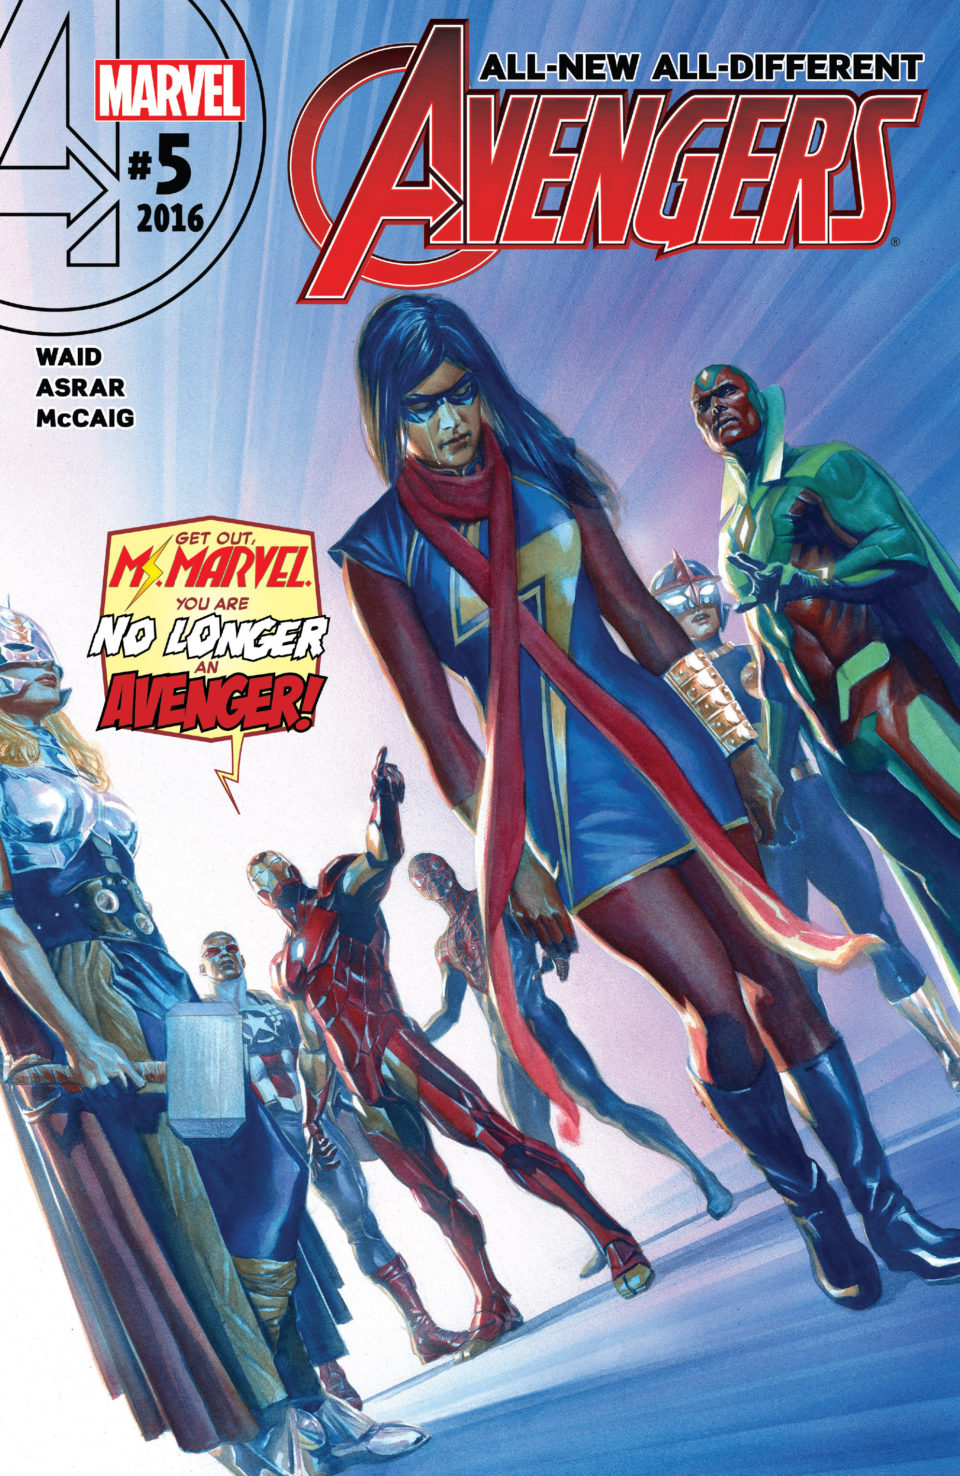 2015.04-All-NewAll-DifferentAvengers5-AlexRoss